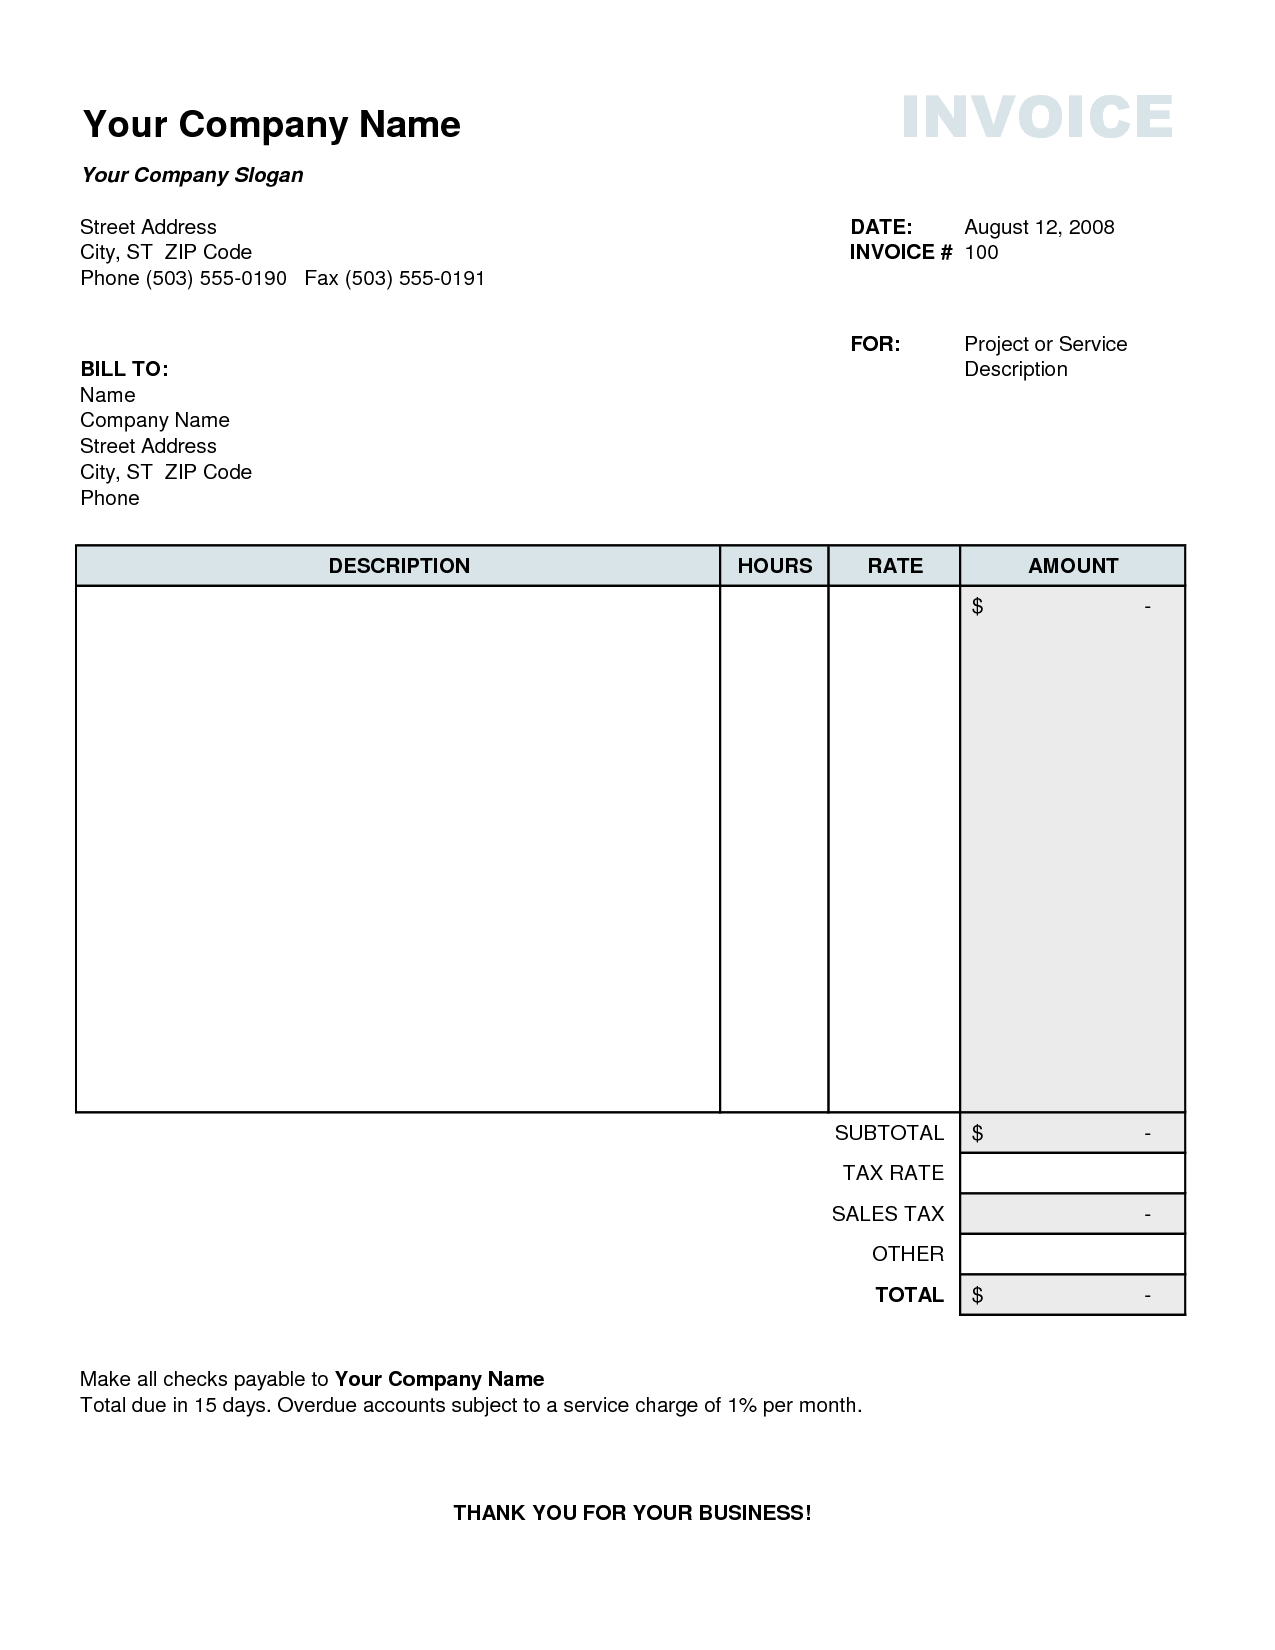 Invoice Template Excel Australia Kevincoynepagetk - Make an invoice free for service business